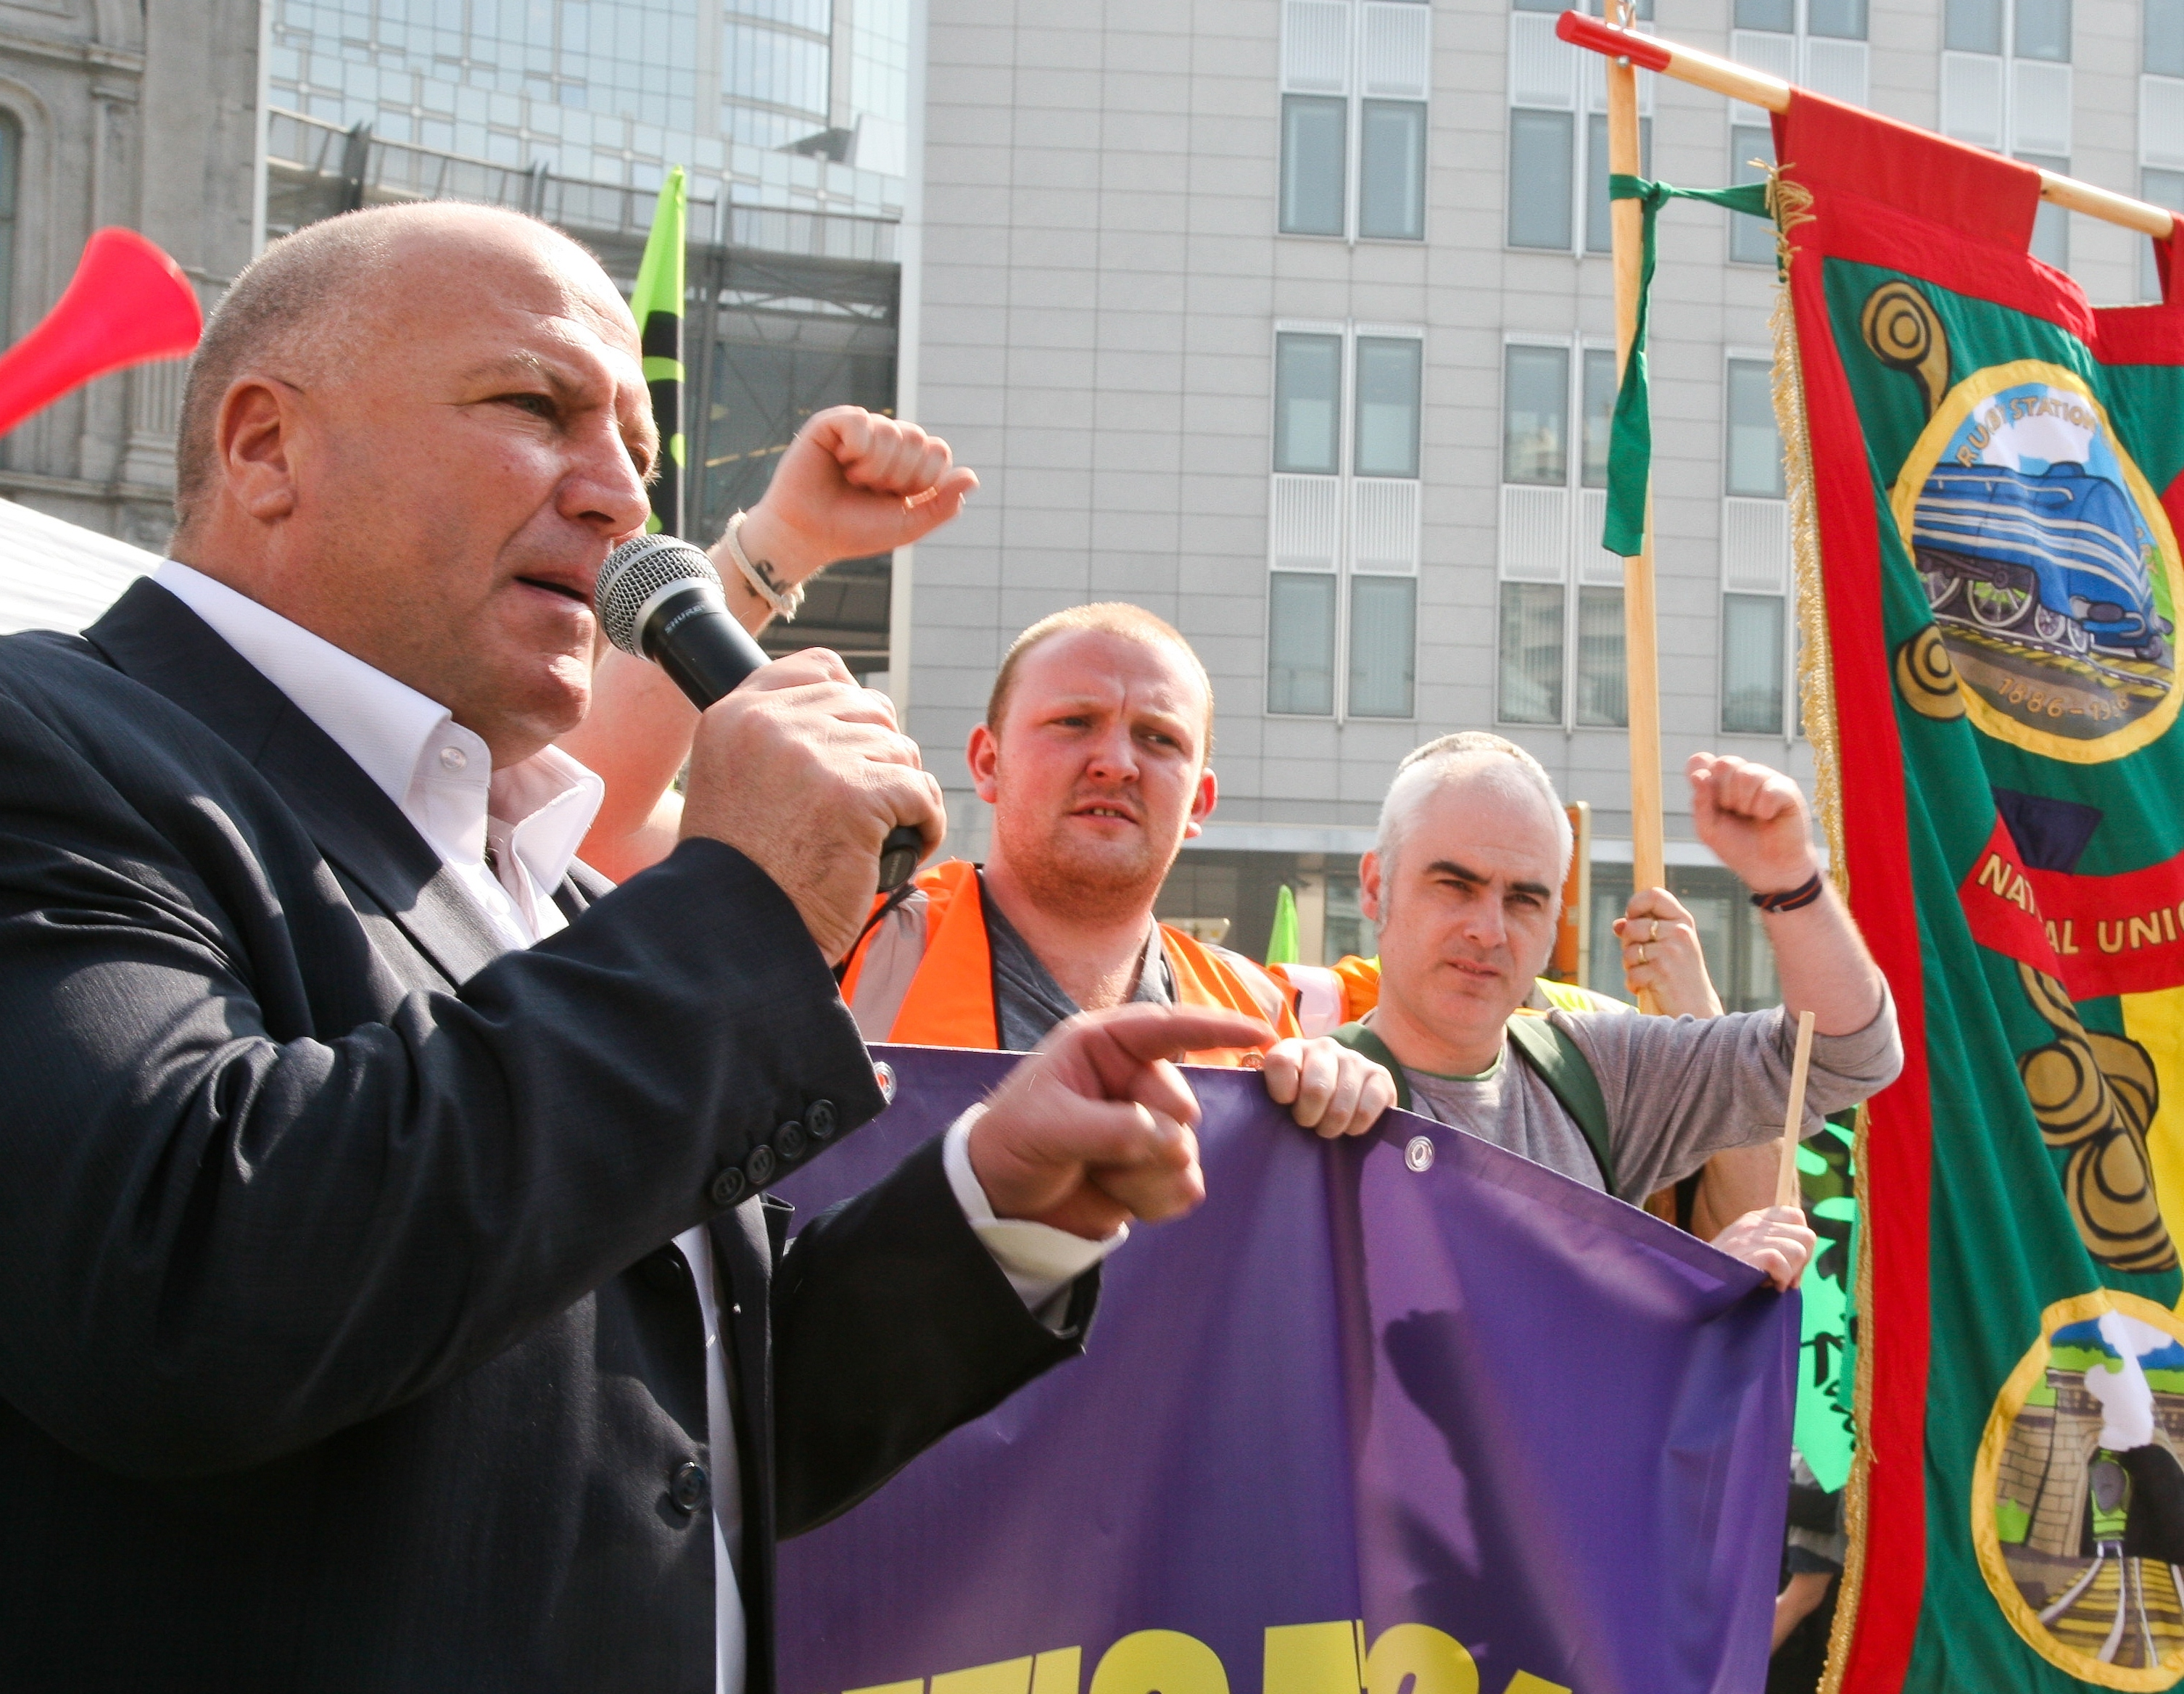 Demonstration in Brussels by transport workers' unions